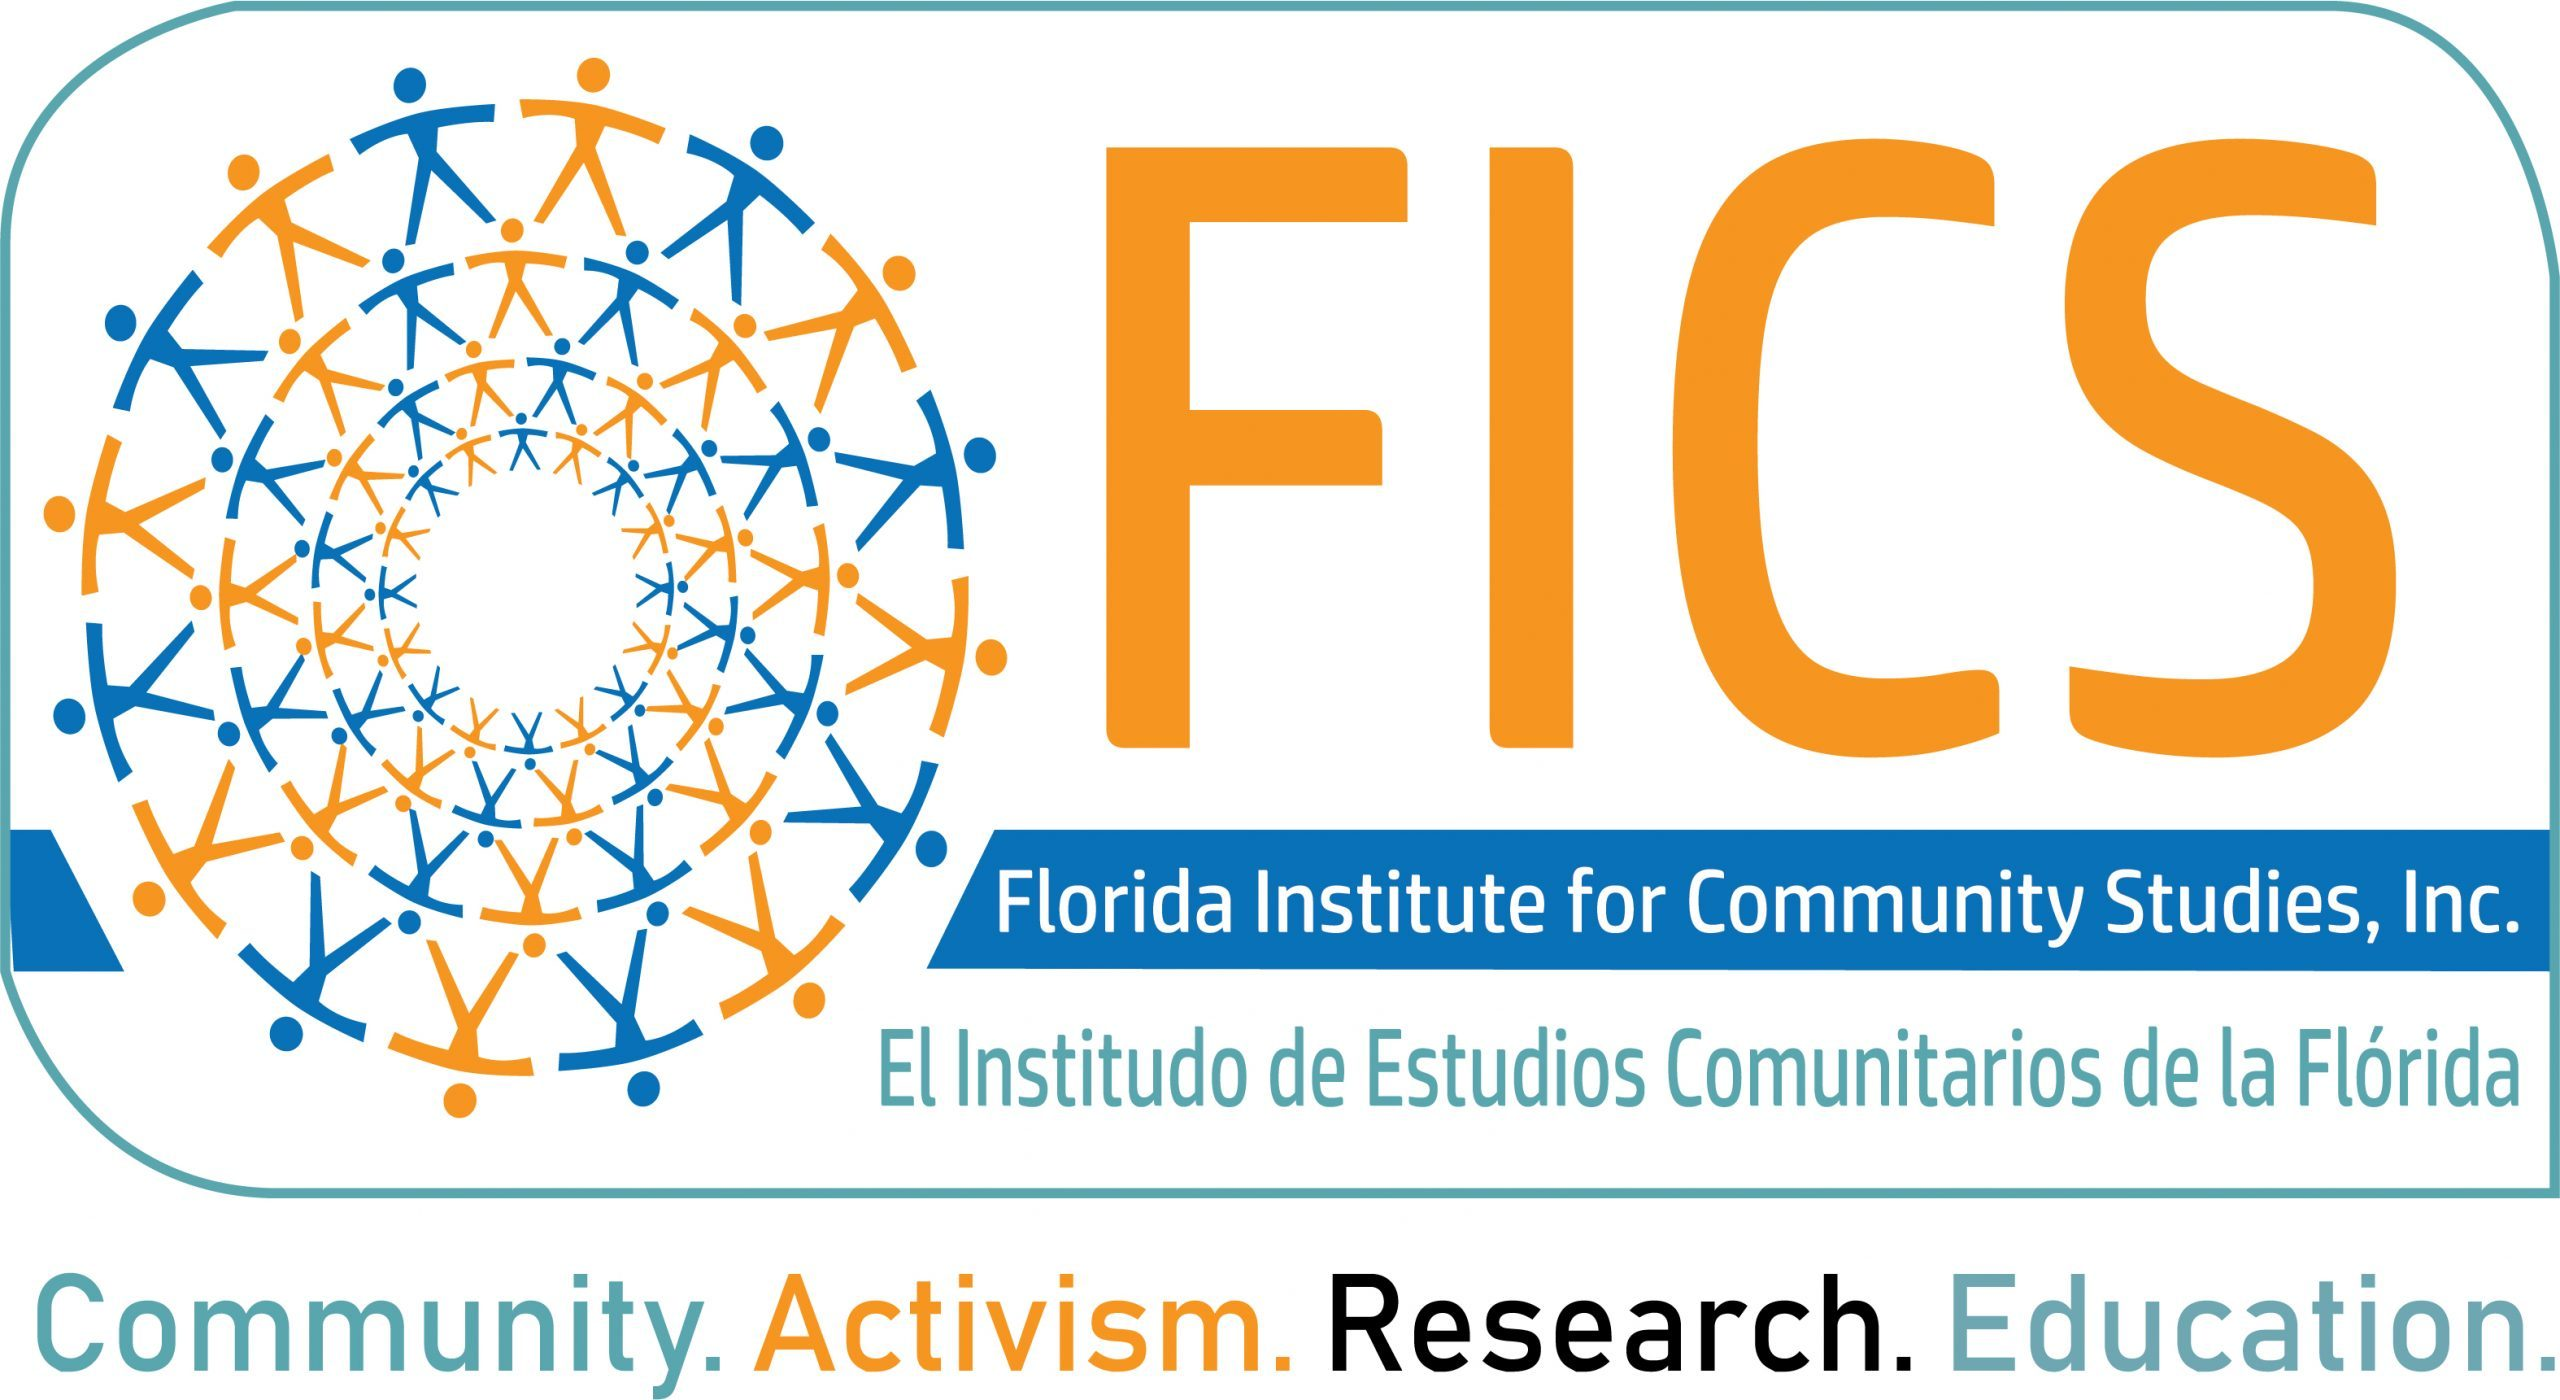 Florida Institute for Community Studies